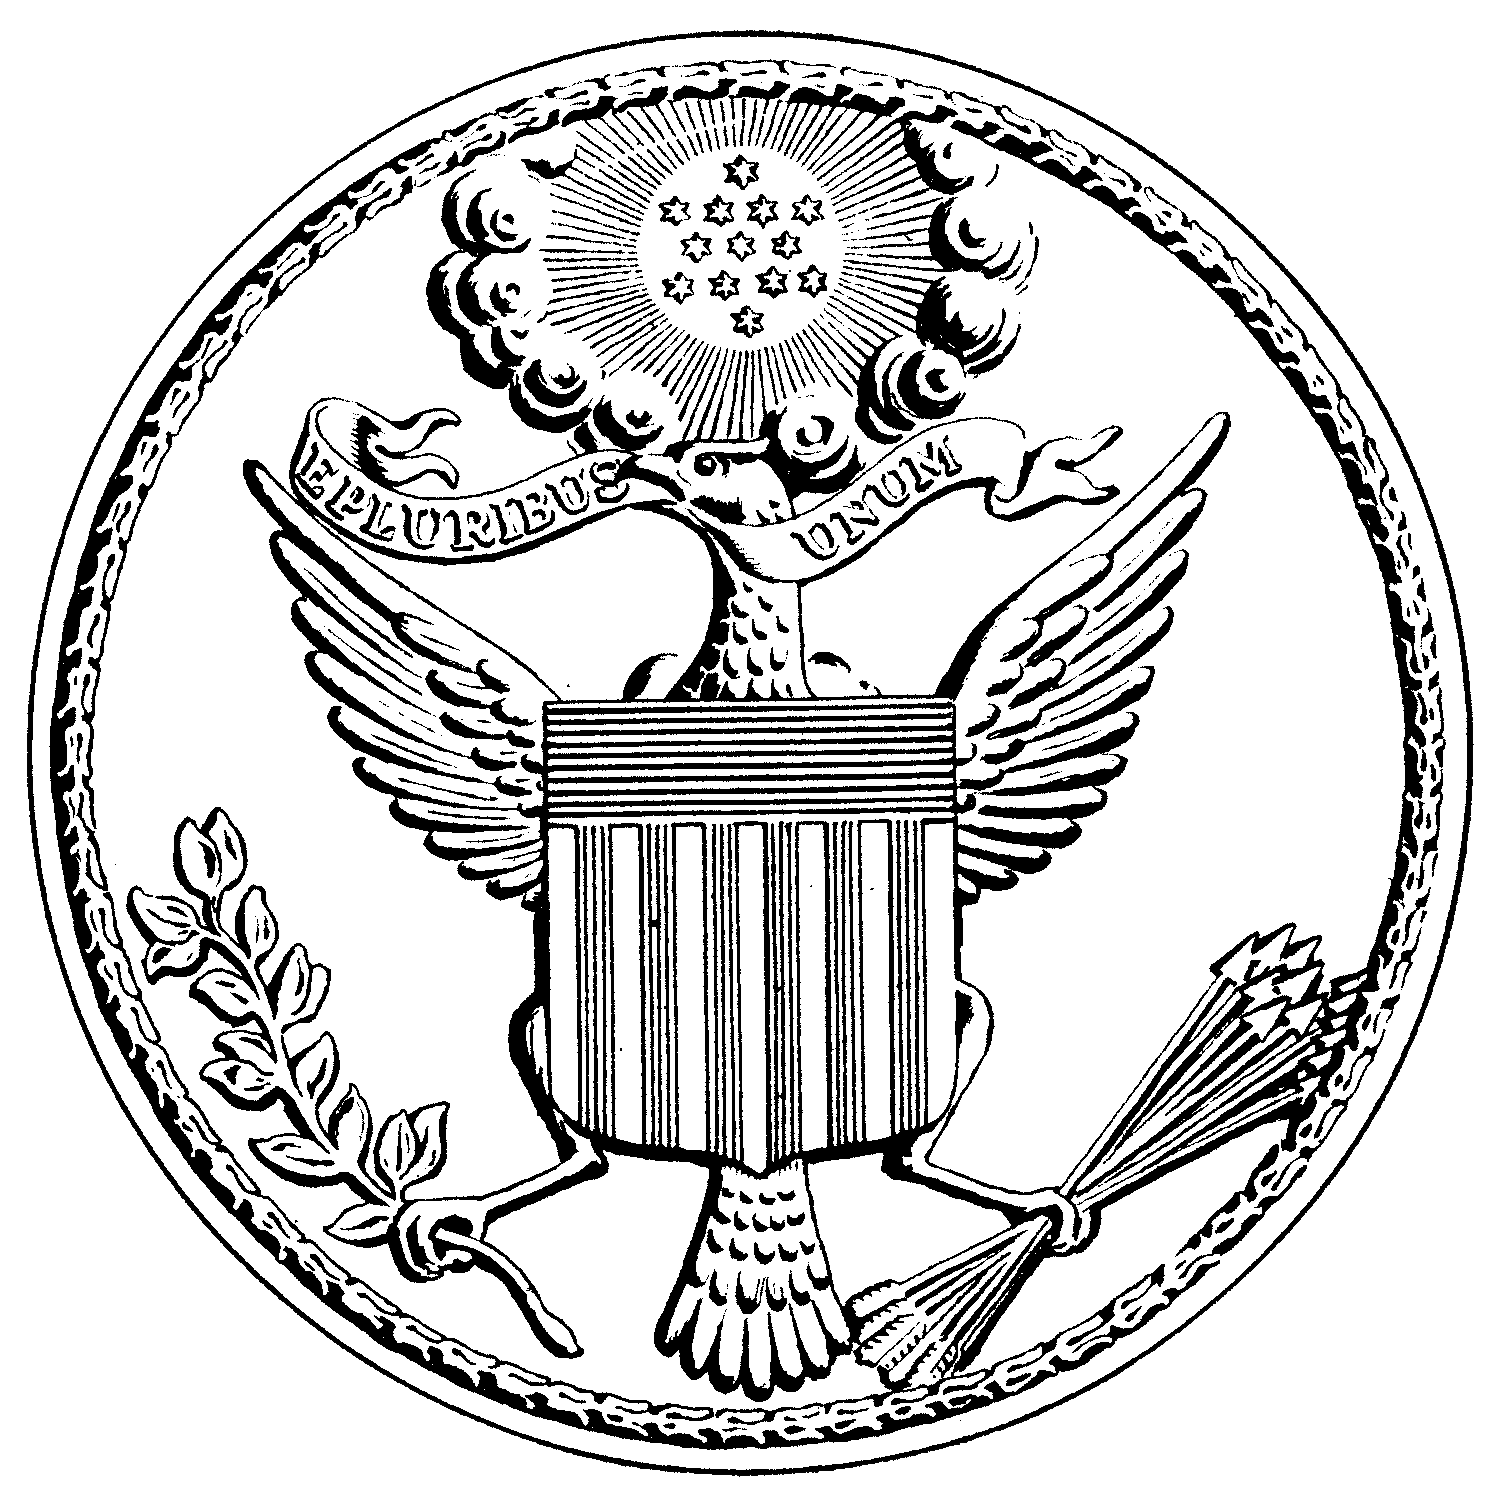 American drawing. Image us great seal